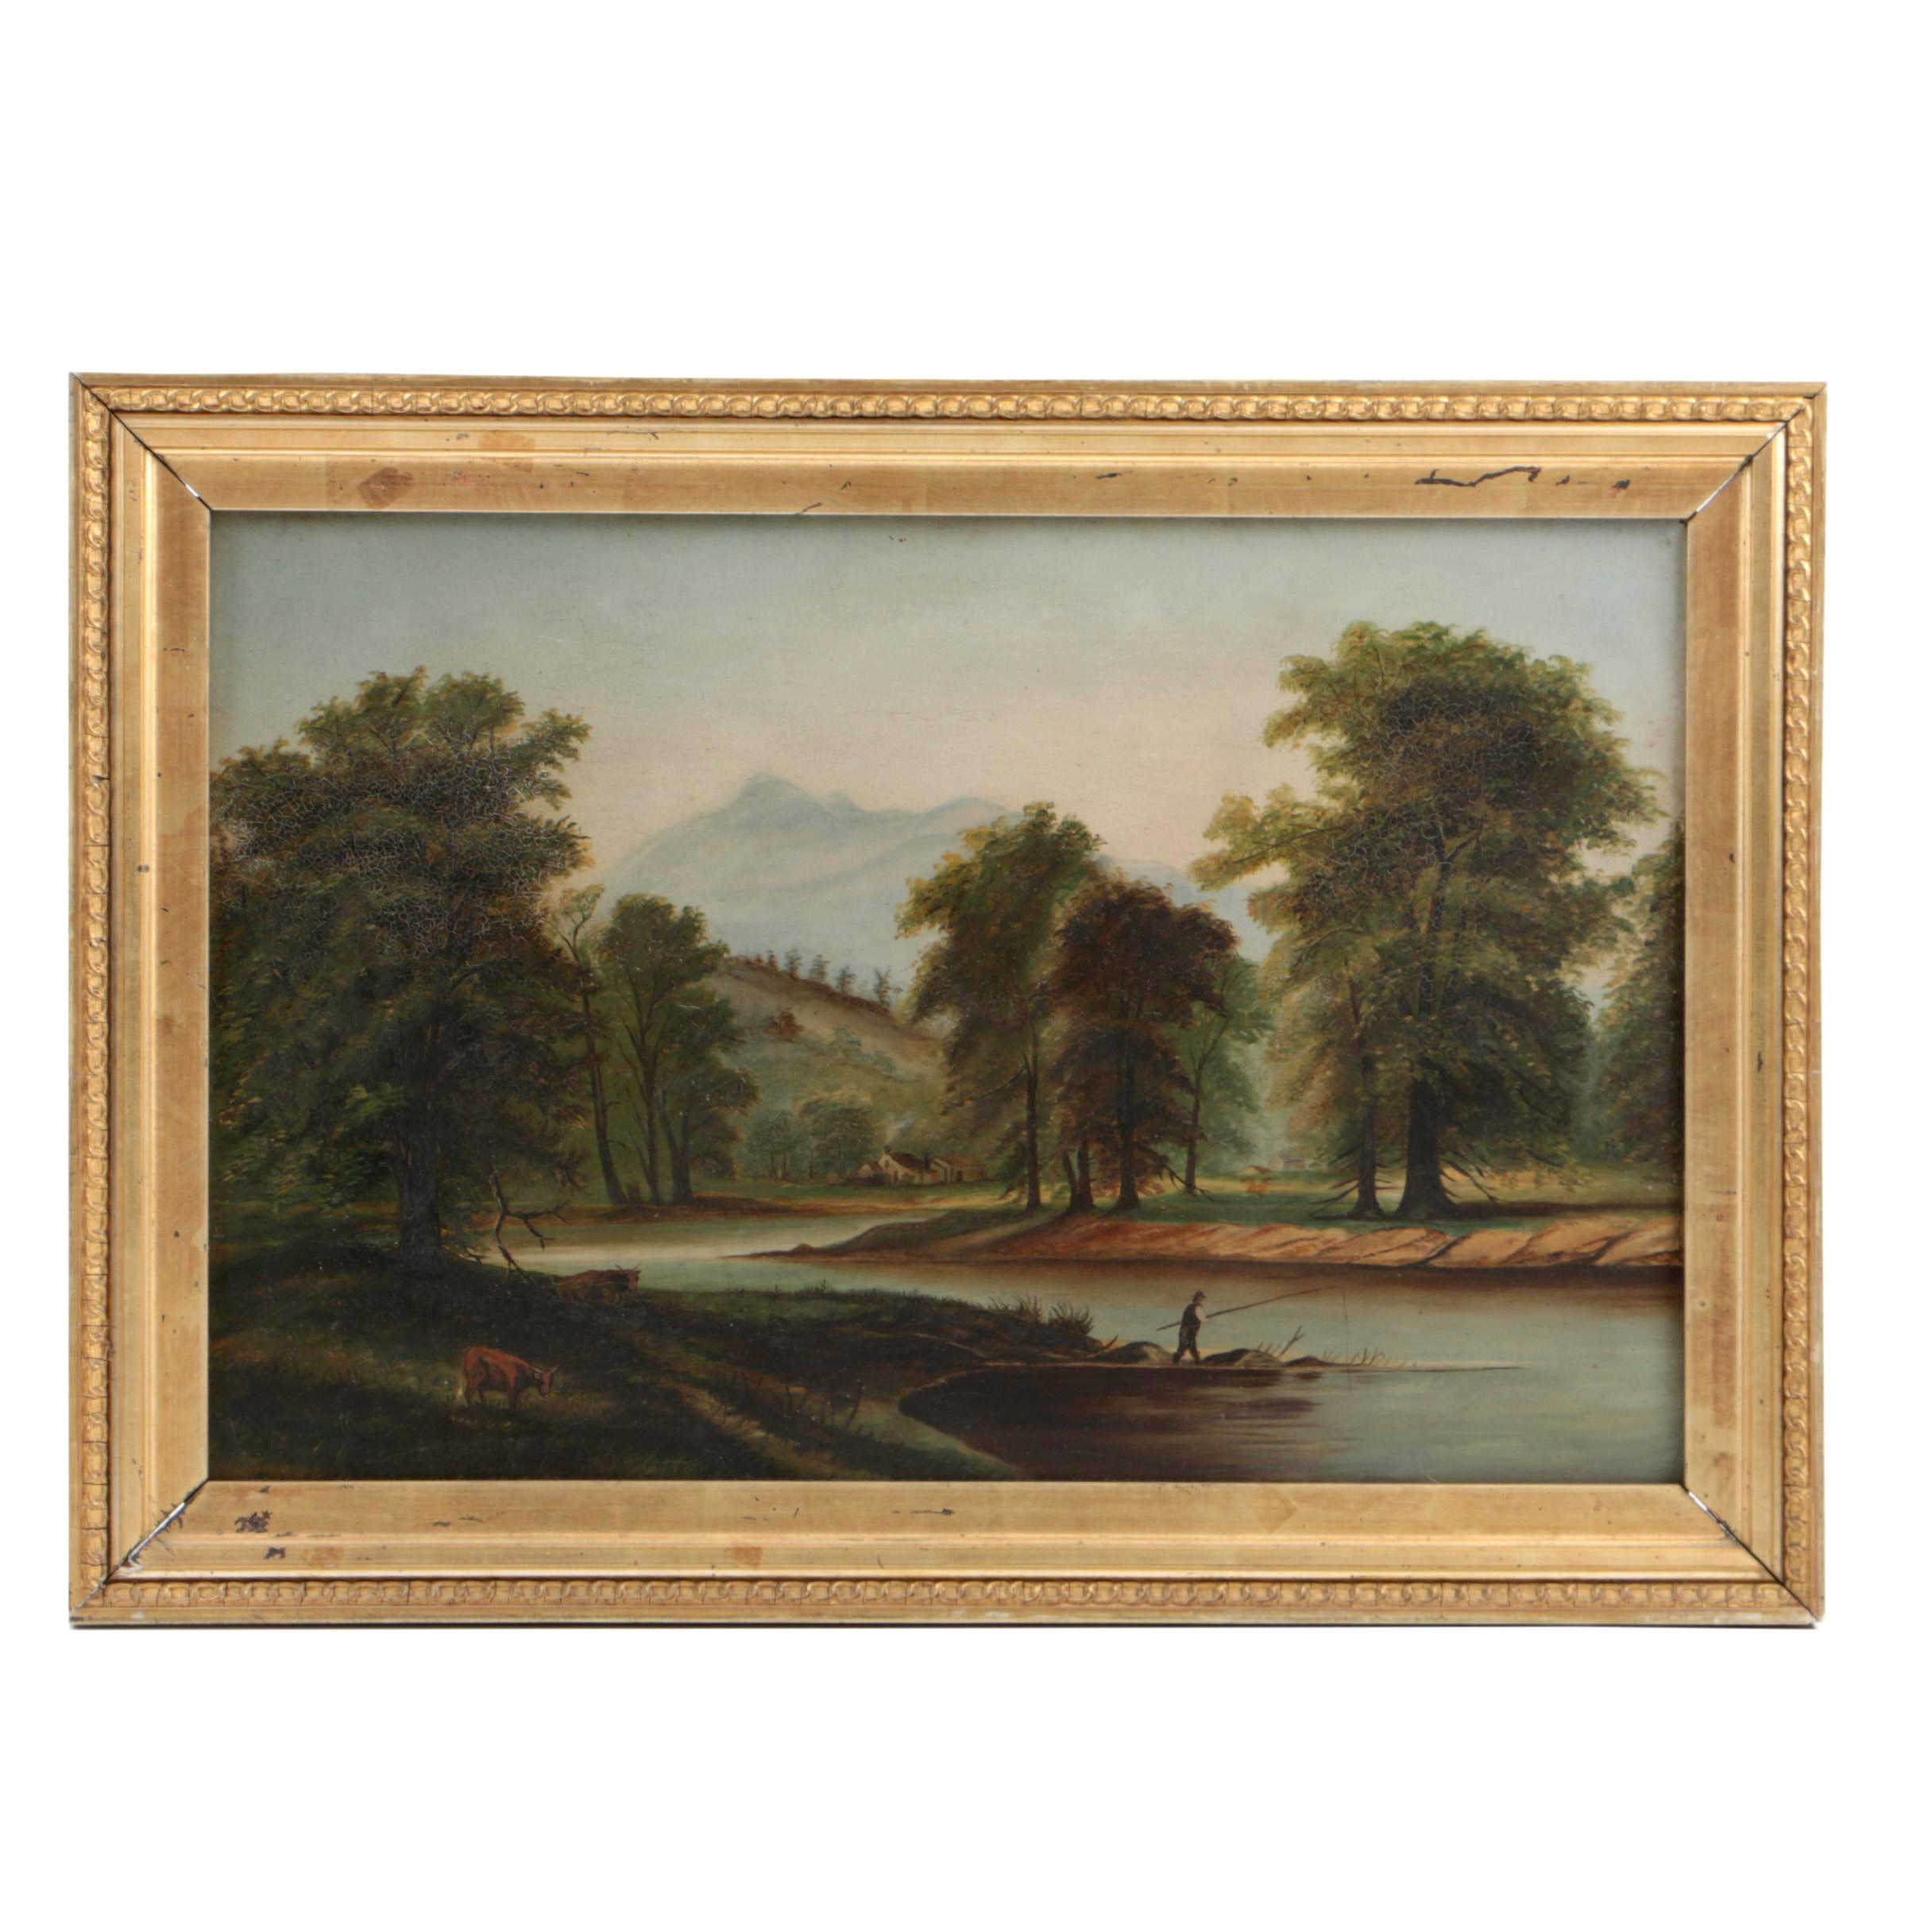 Mid 19th-Century English School Oil Painting on Board of Pastoral Landscape